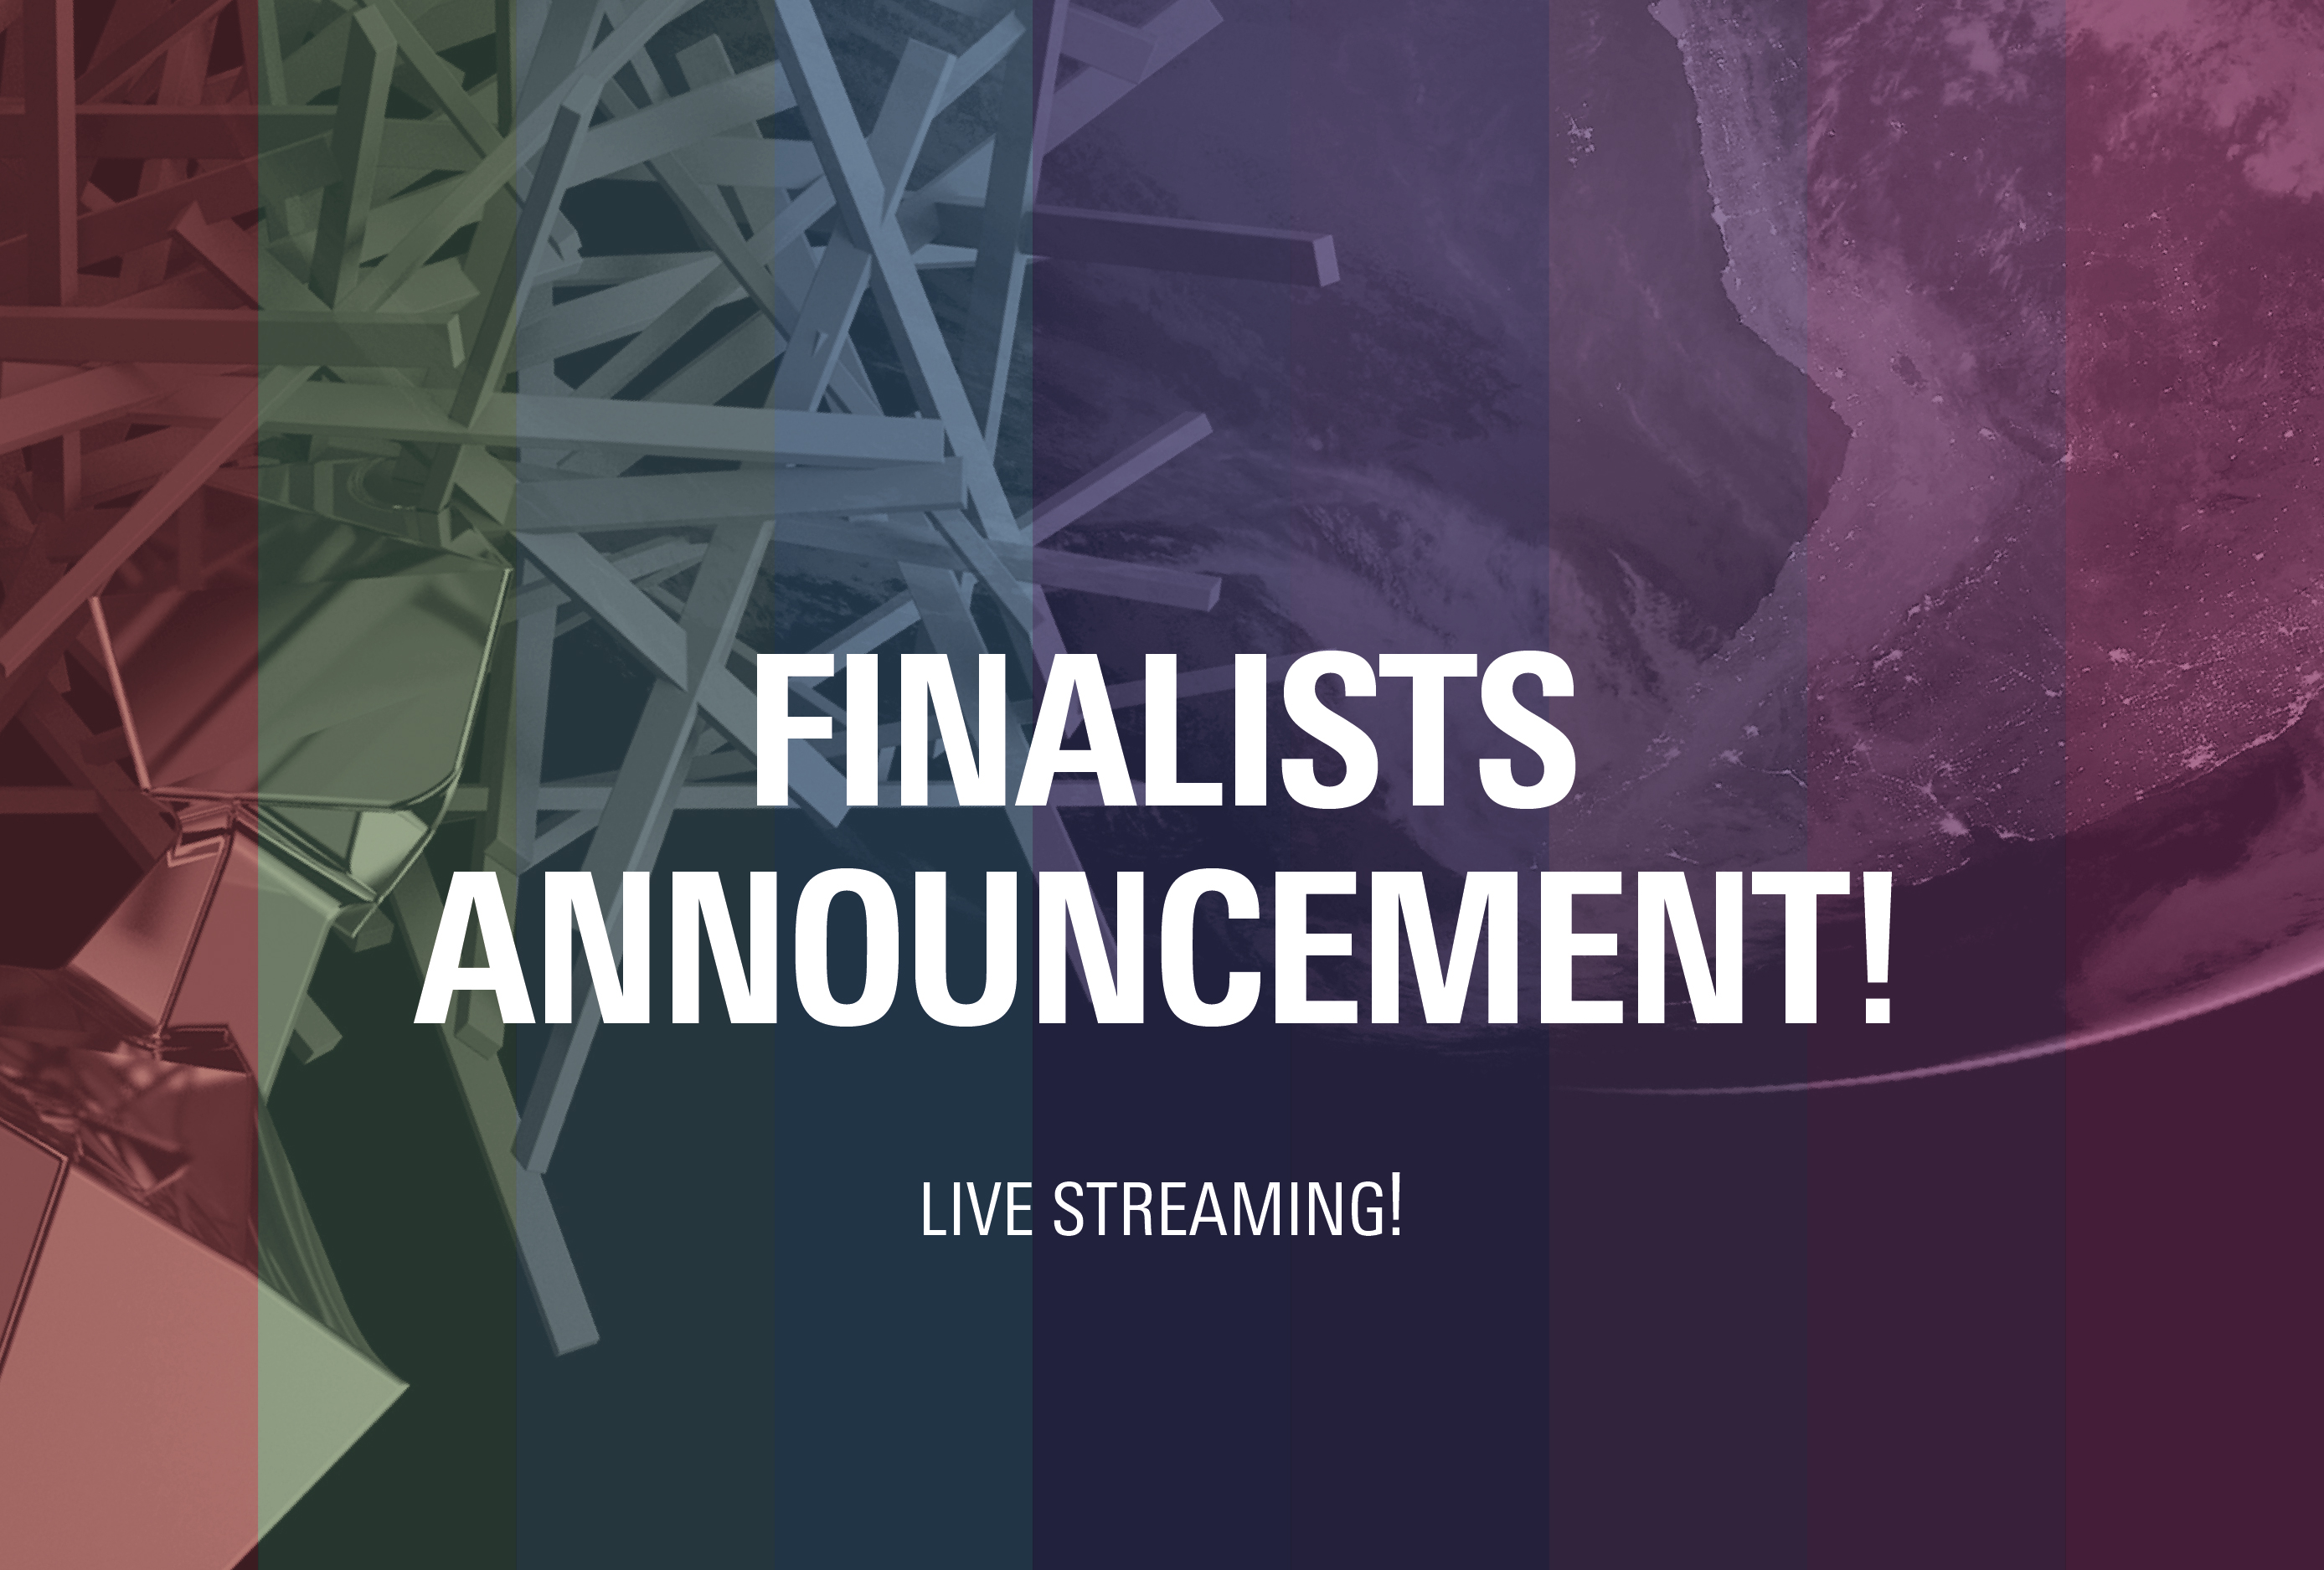 Finalists' announcement!